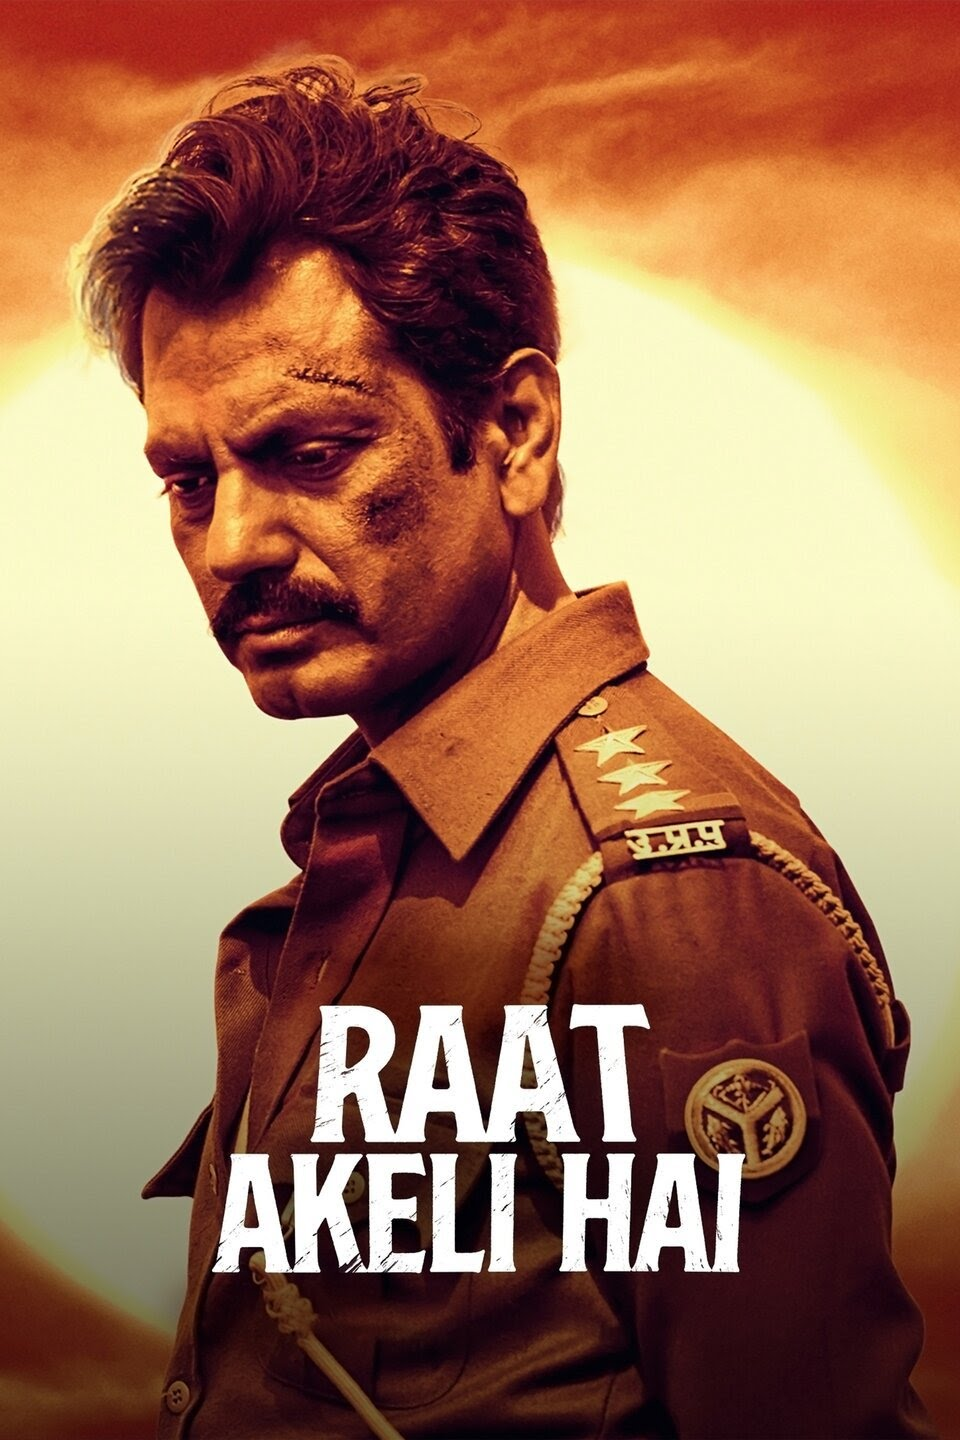 Download Raat Akeli Hai (2020) Hindi 480p [600MB] ||720p [1.3GB] || 1080p [4.2GB]